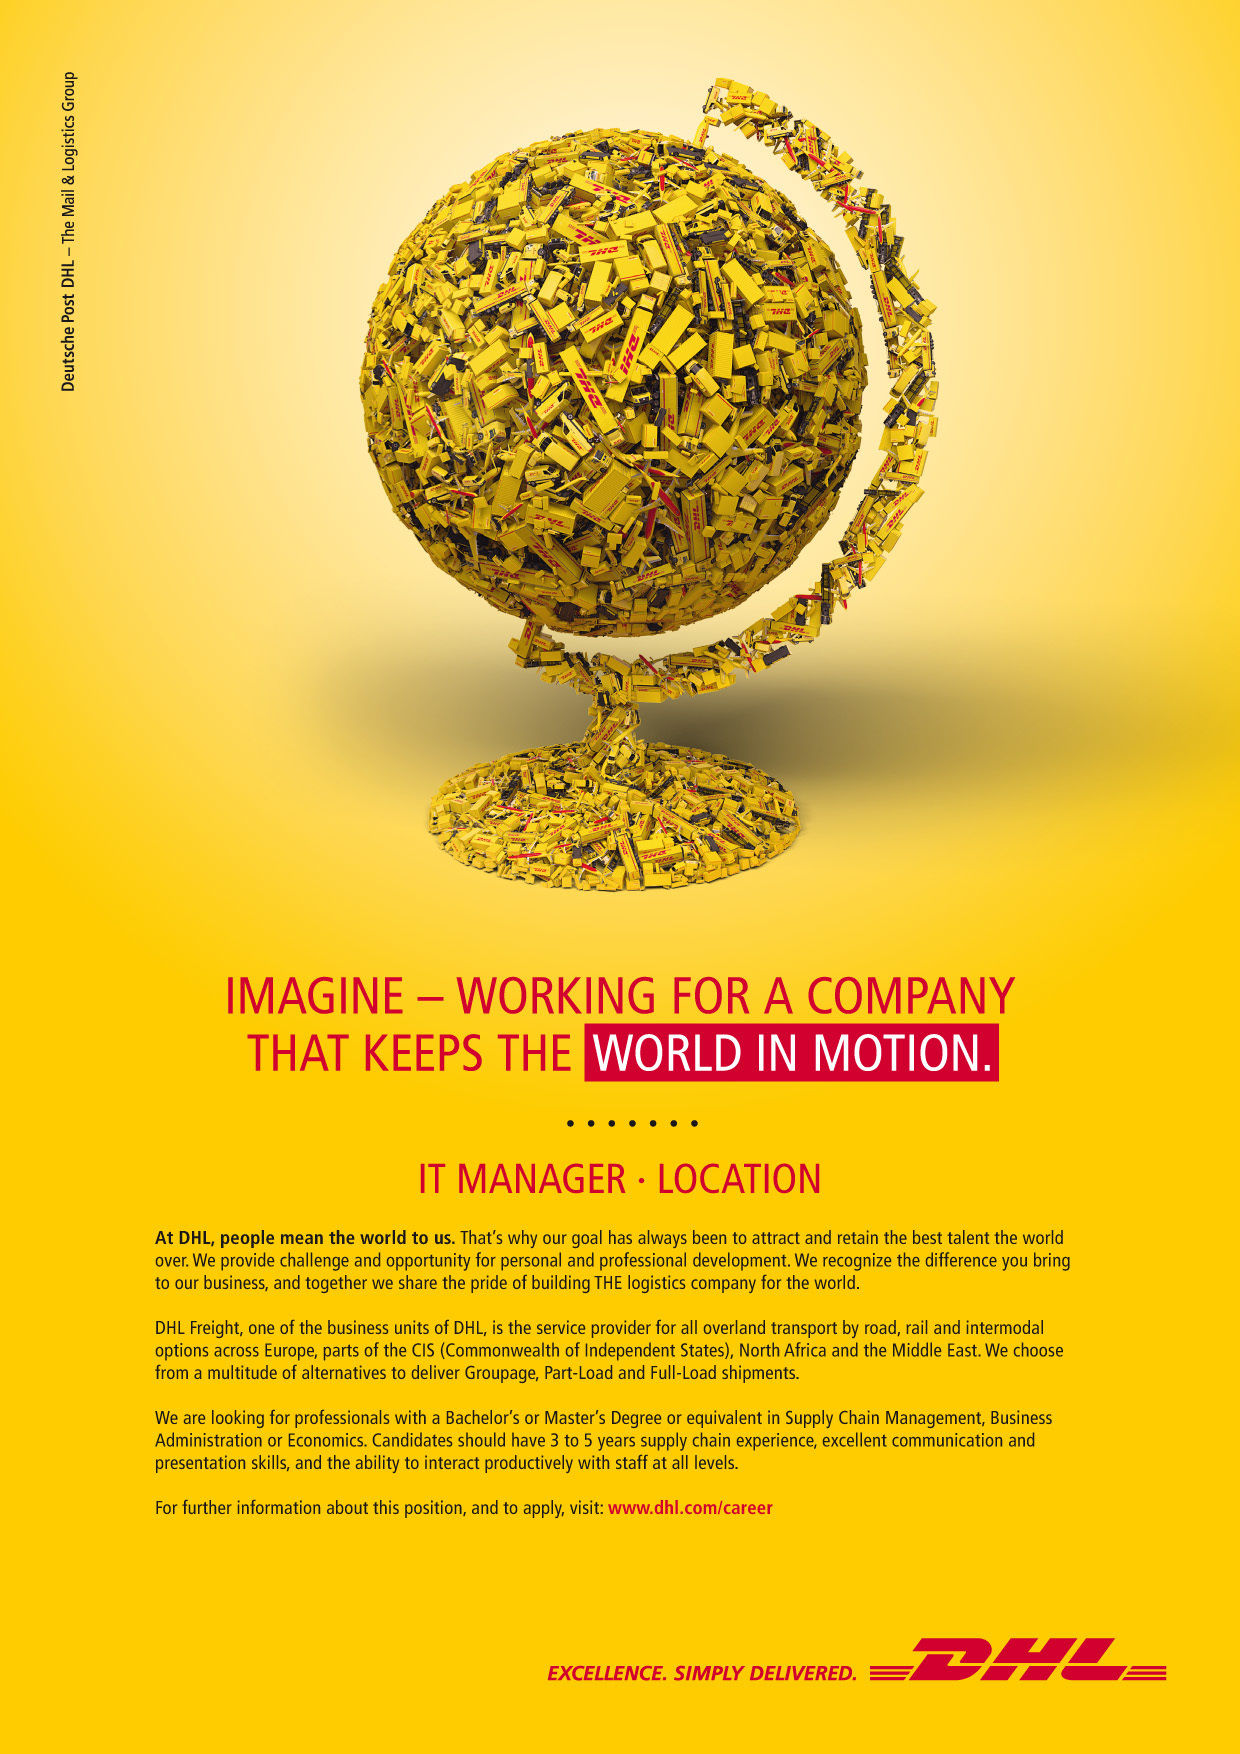 DHL - World in Motion